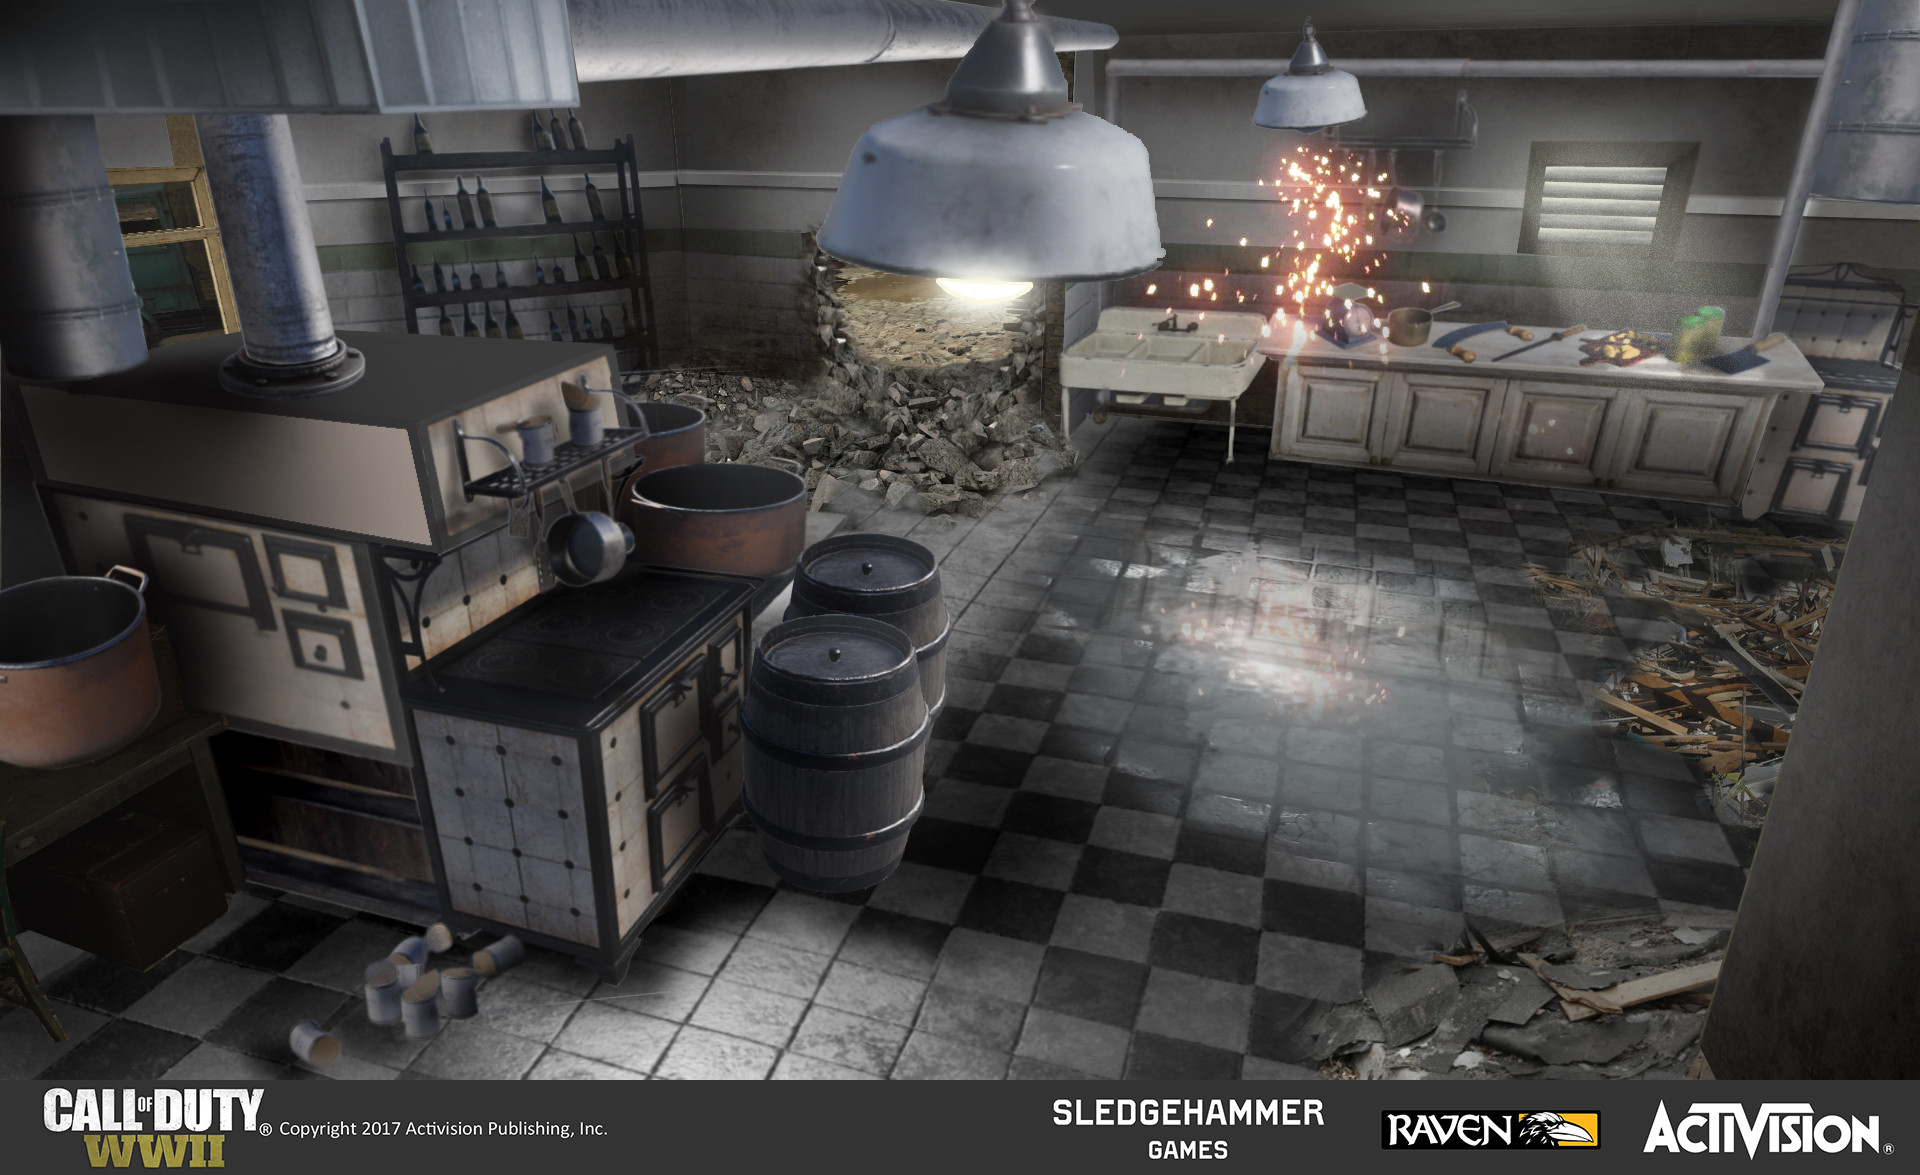 Concept image of a destroyed restaurant kitchen which encloses one of the Objective 2 hostage rescue areas. I created this image by painting over a base image using a combination of photobashing, digital painting, and images of in-game content.